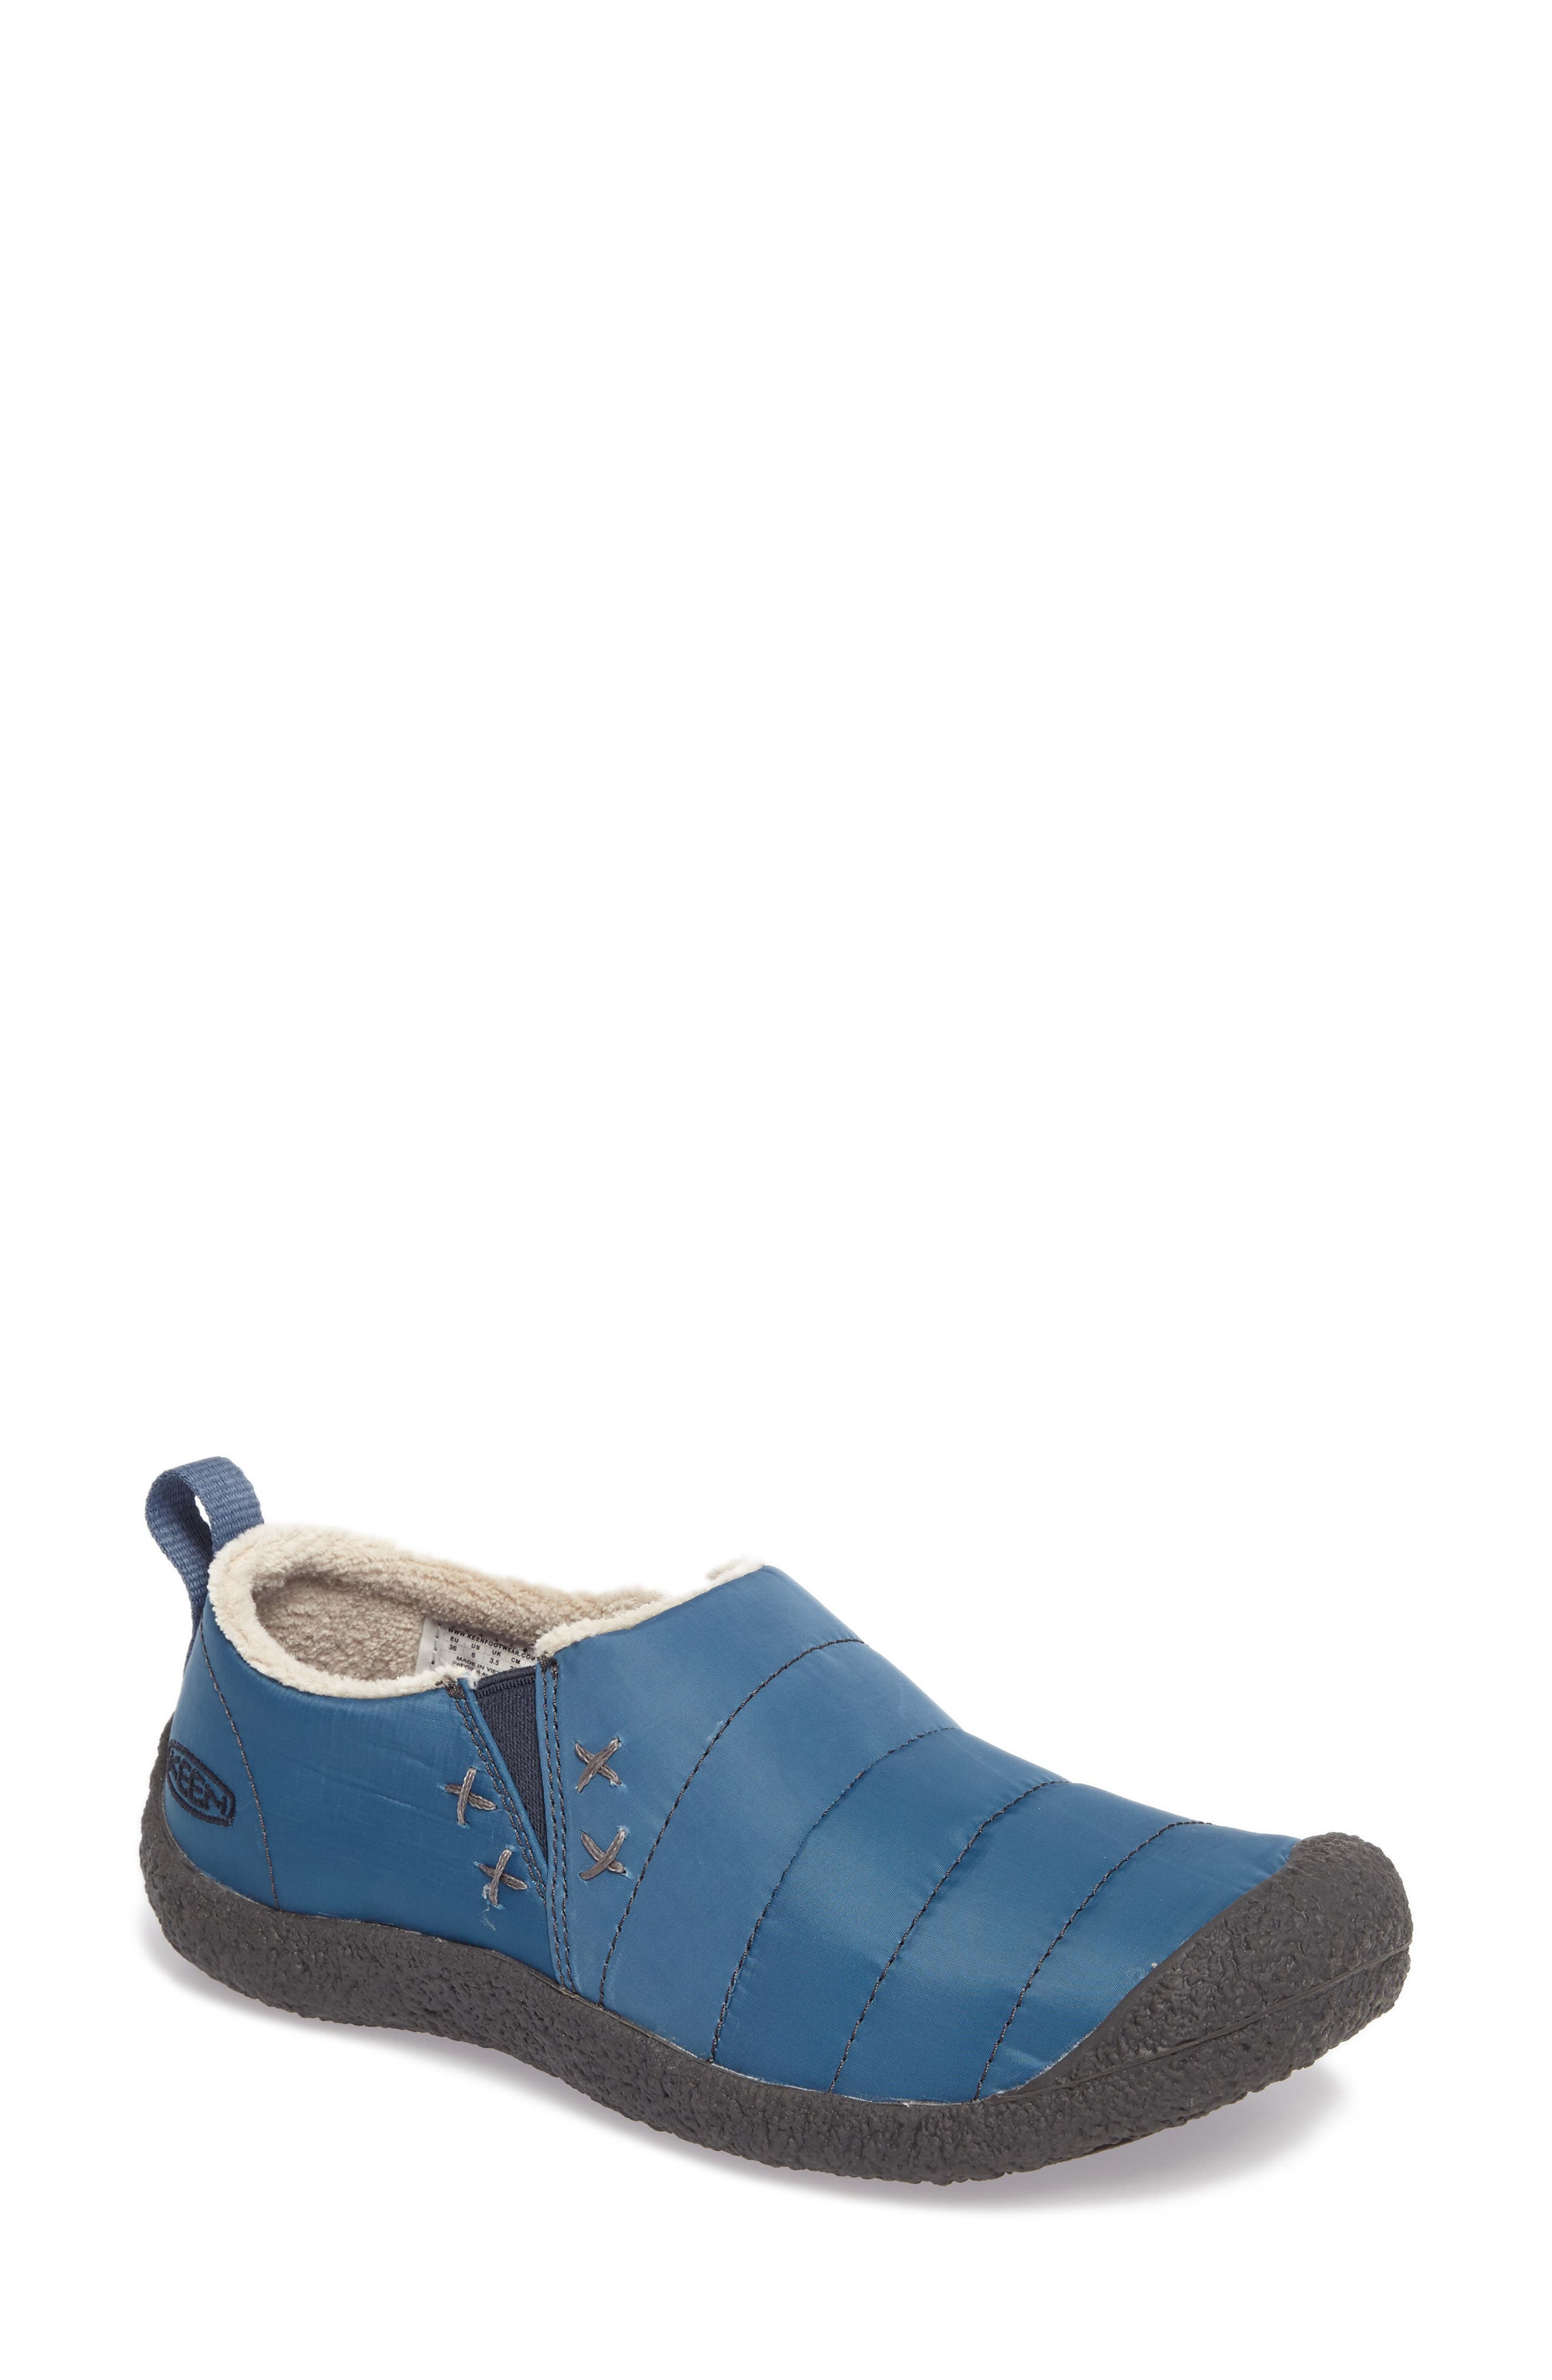 Keen Howser II Water-Resistant Round Toe Clog (Women)